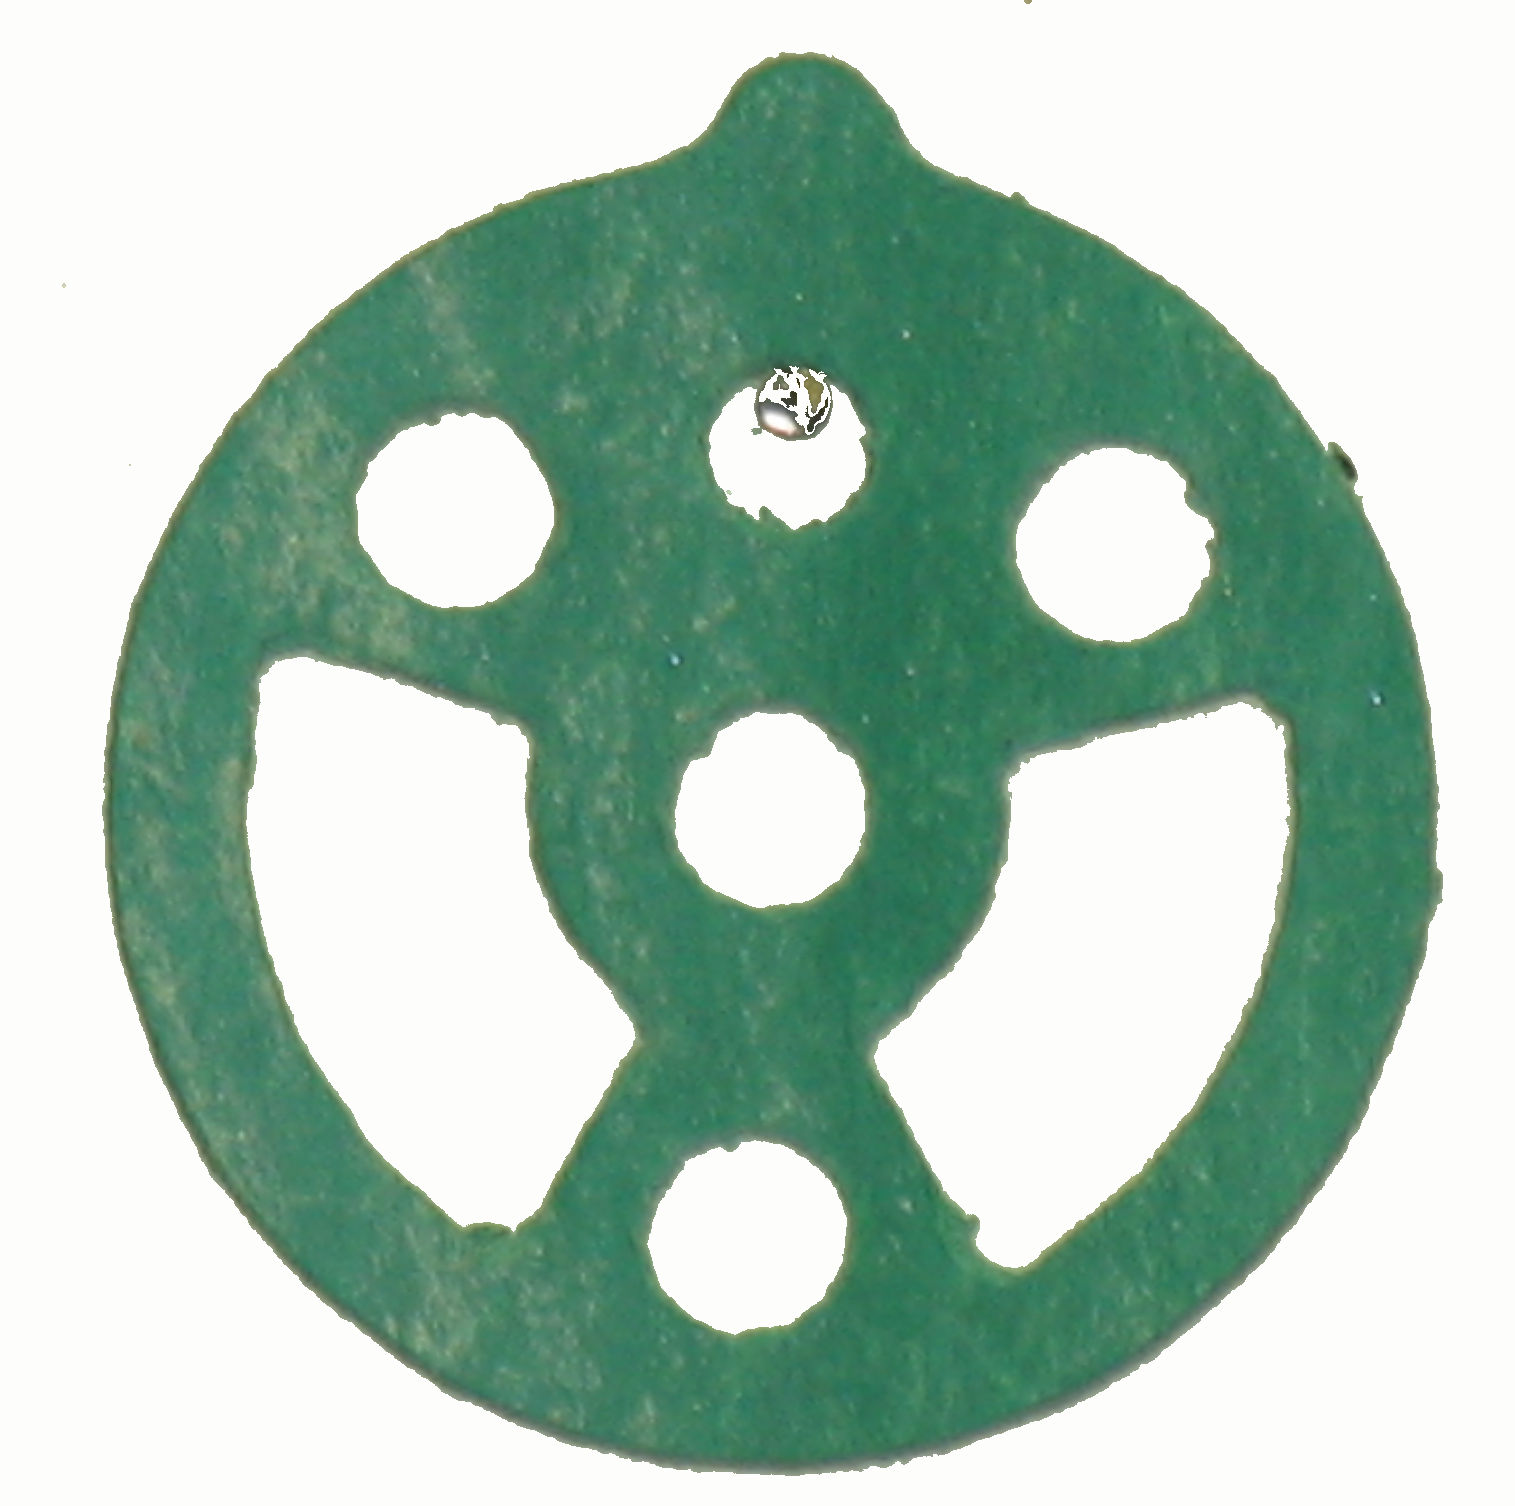 GKT-6370 Gasket R/N 182 (Made in the USA)